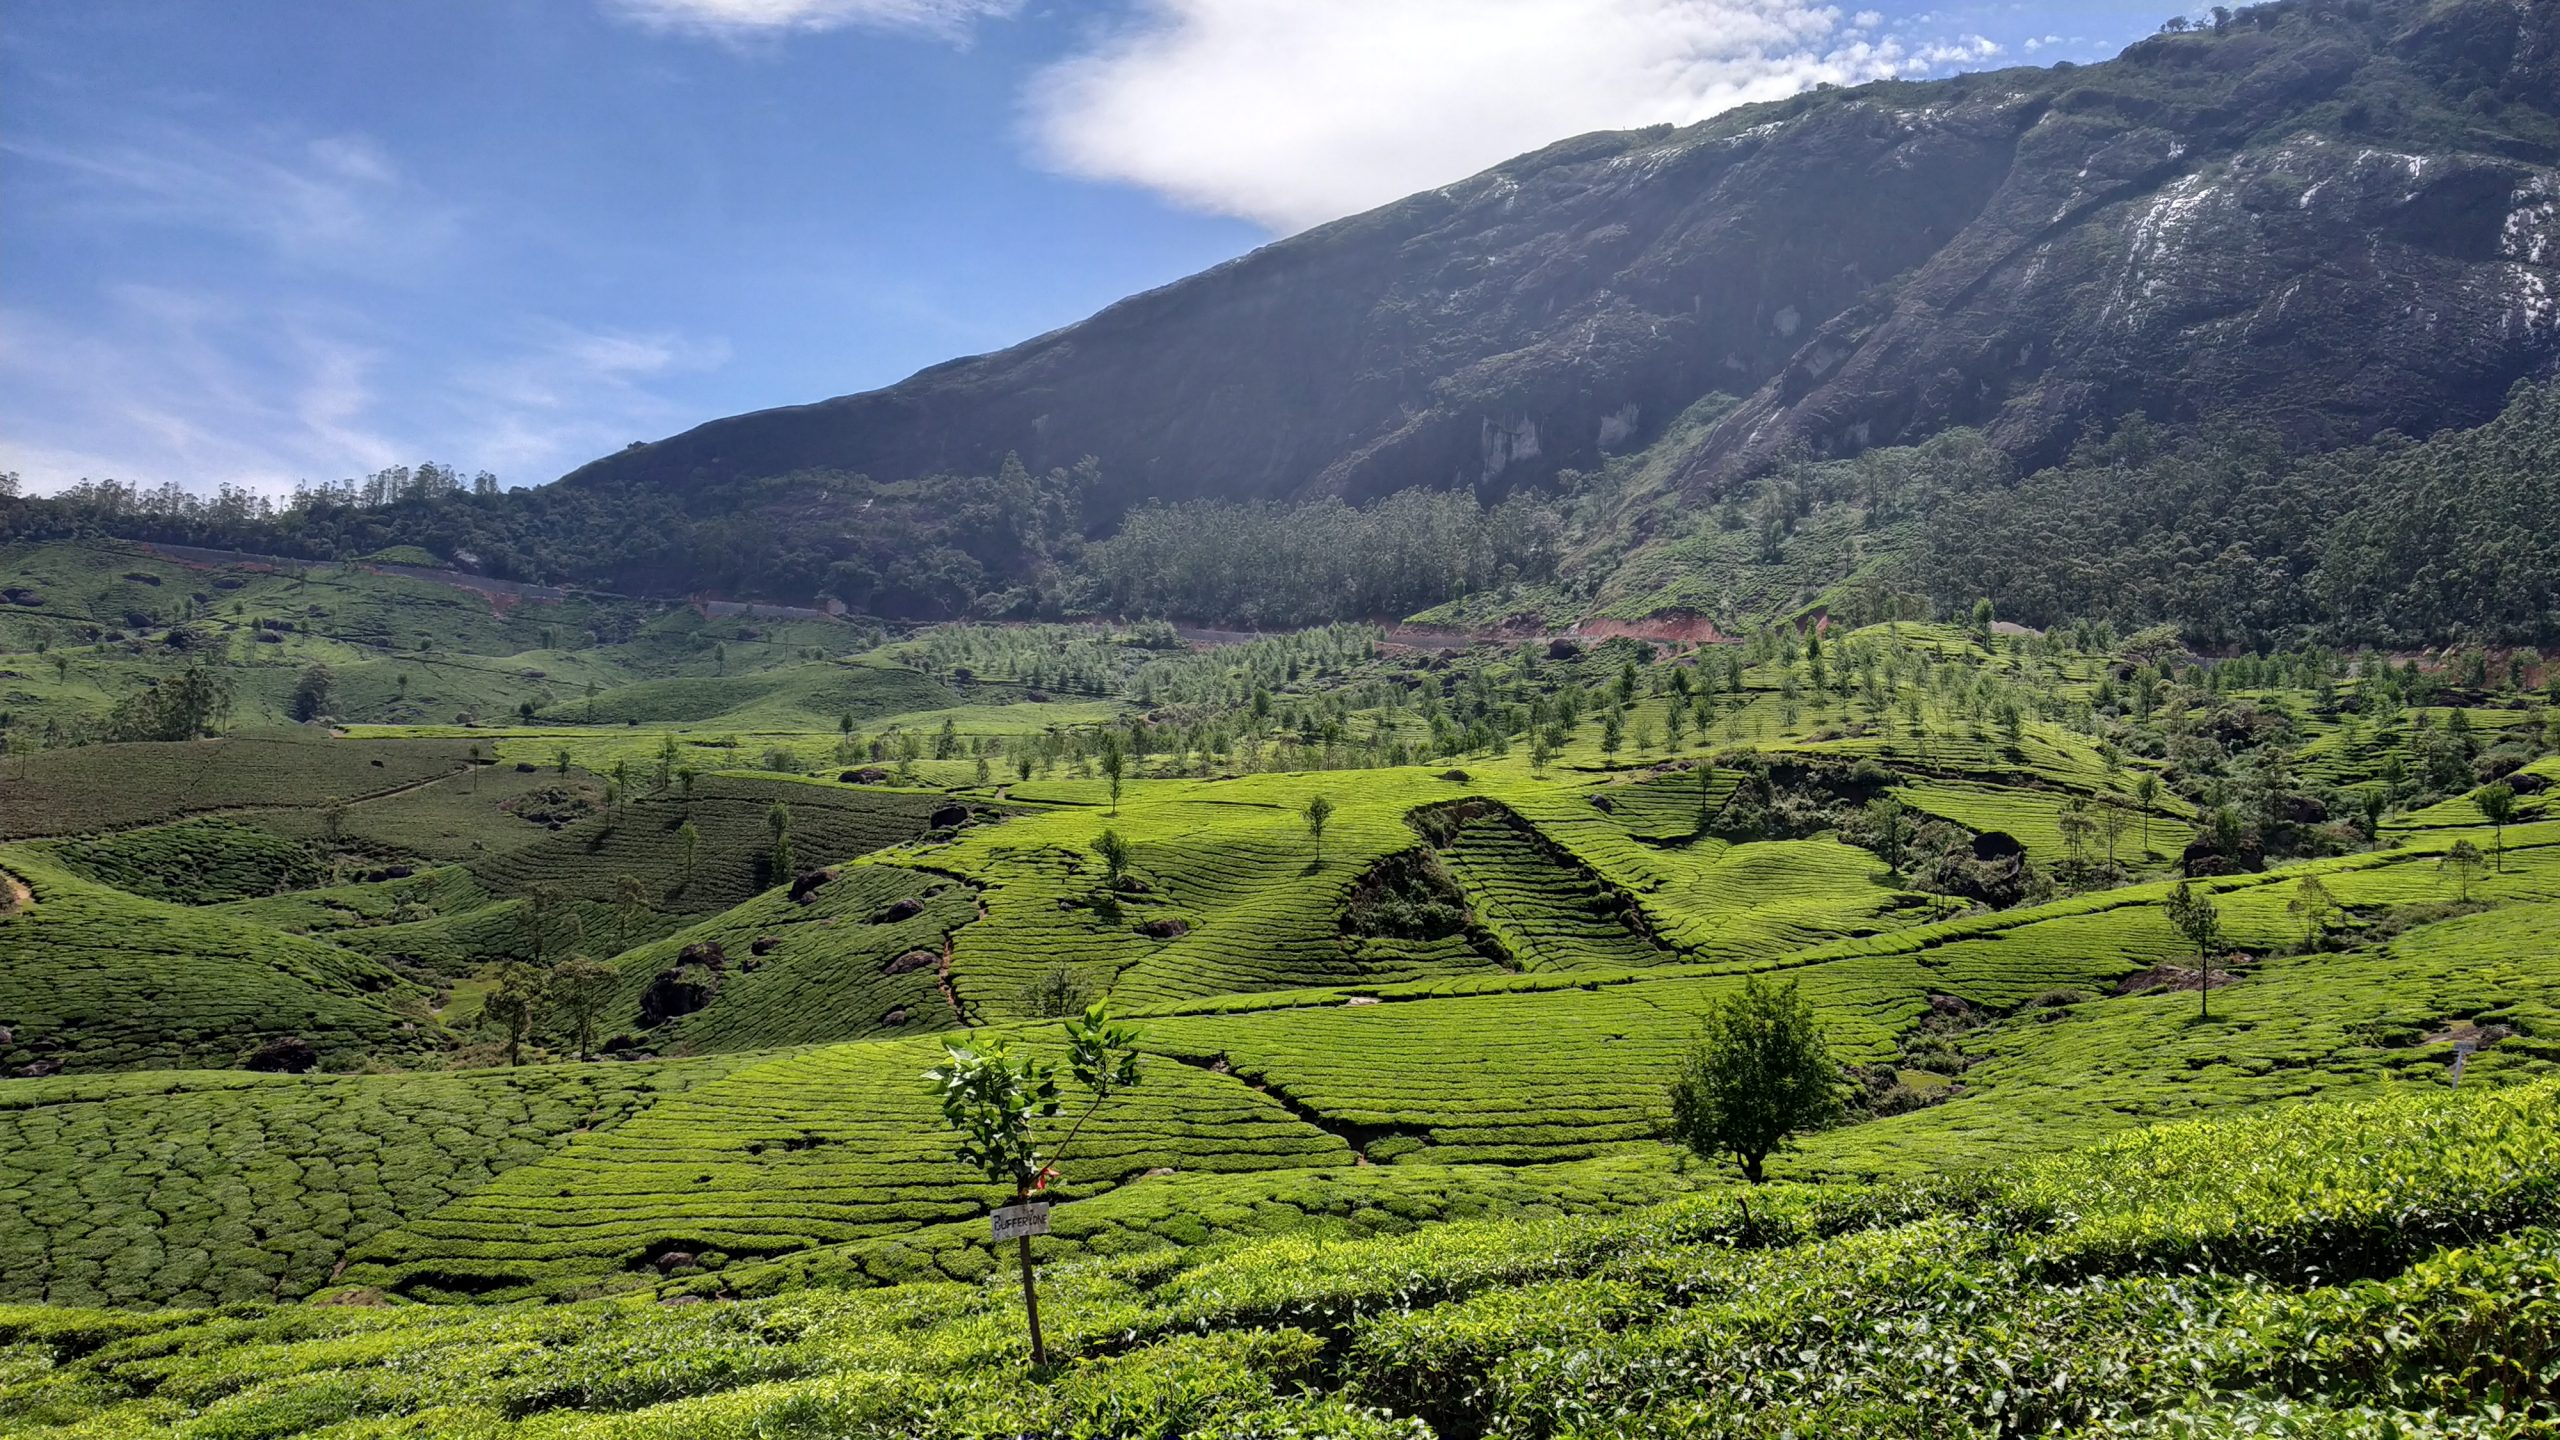 Tea Plantation in hilly area